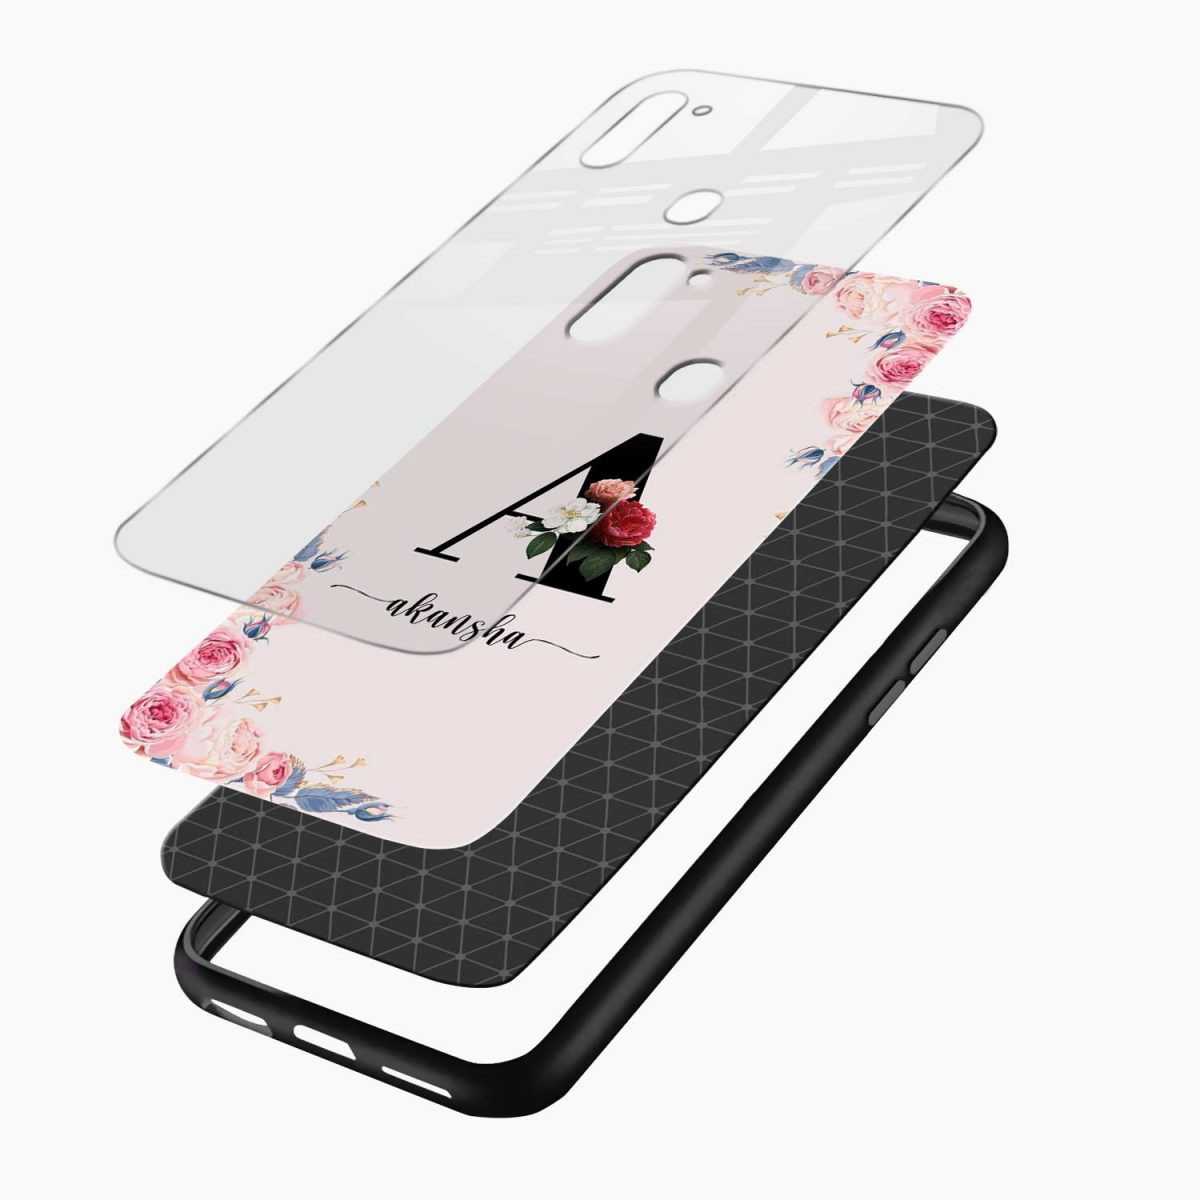 floral name personalised layers view samsung galaxy m11 back cover